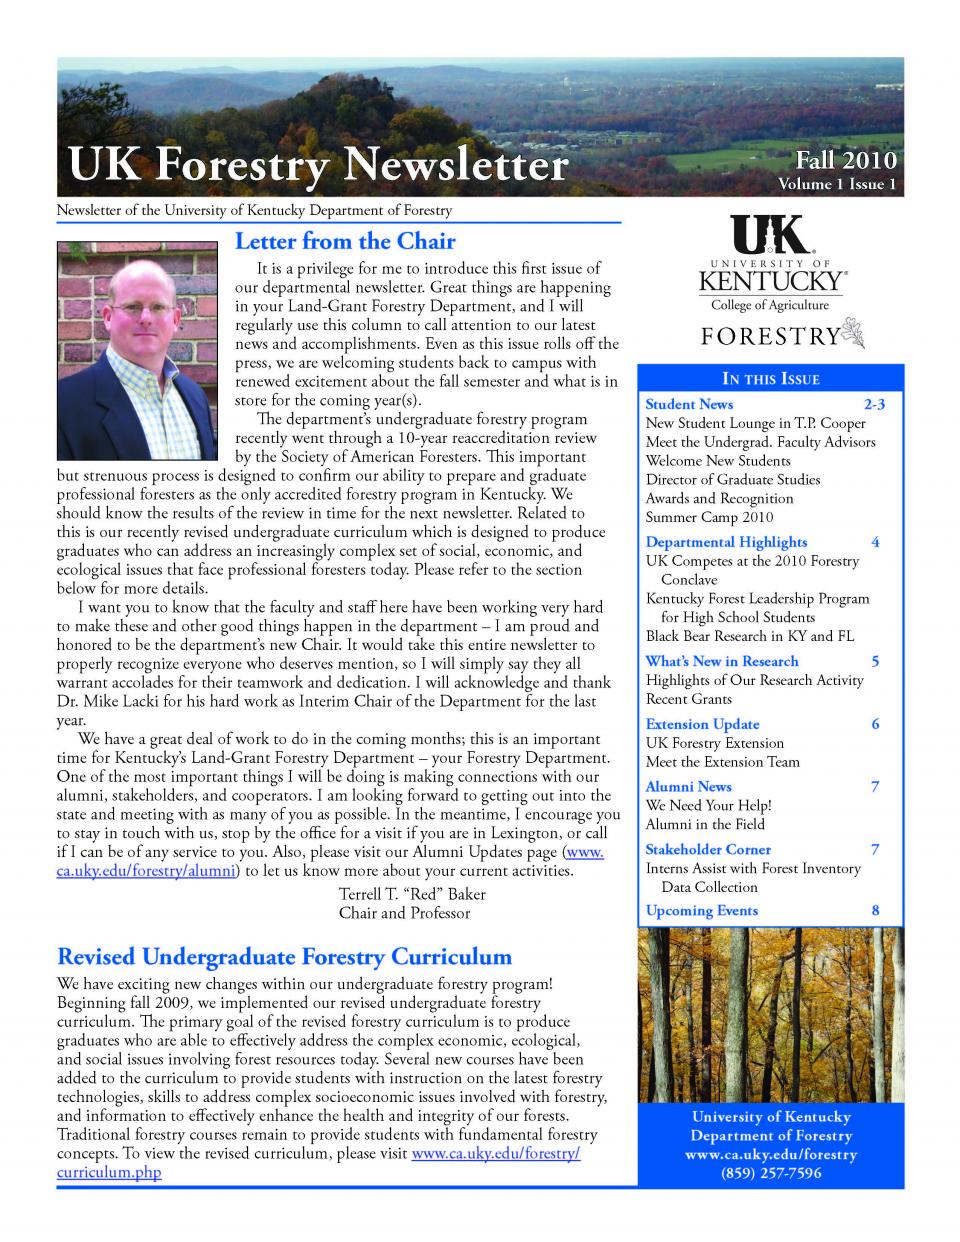 Cover page of the Department Newsletter - Fall 2010